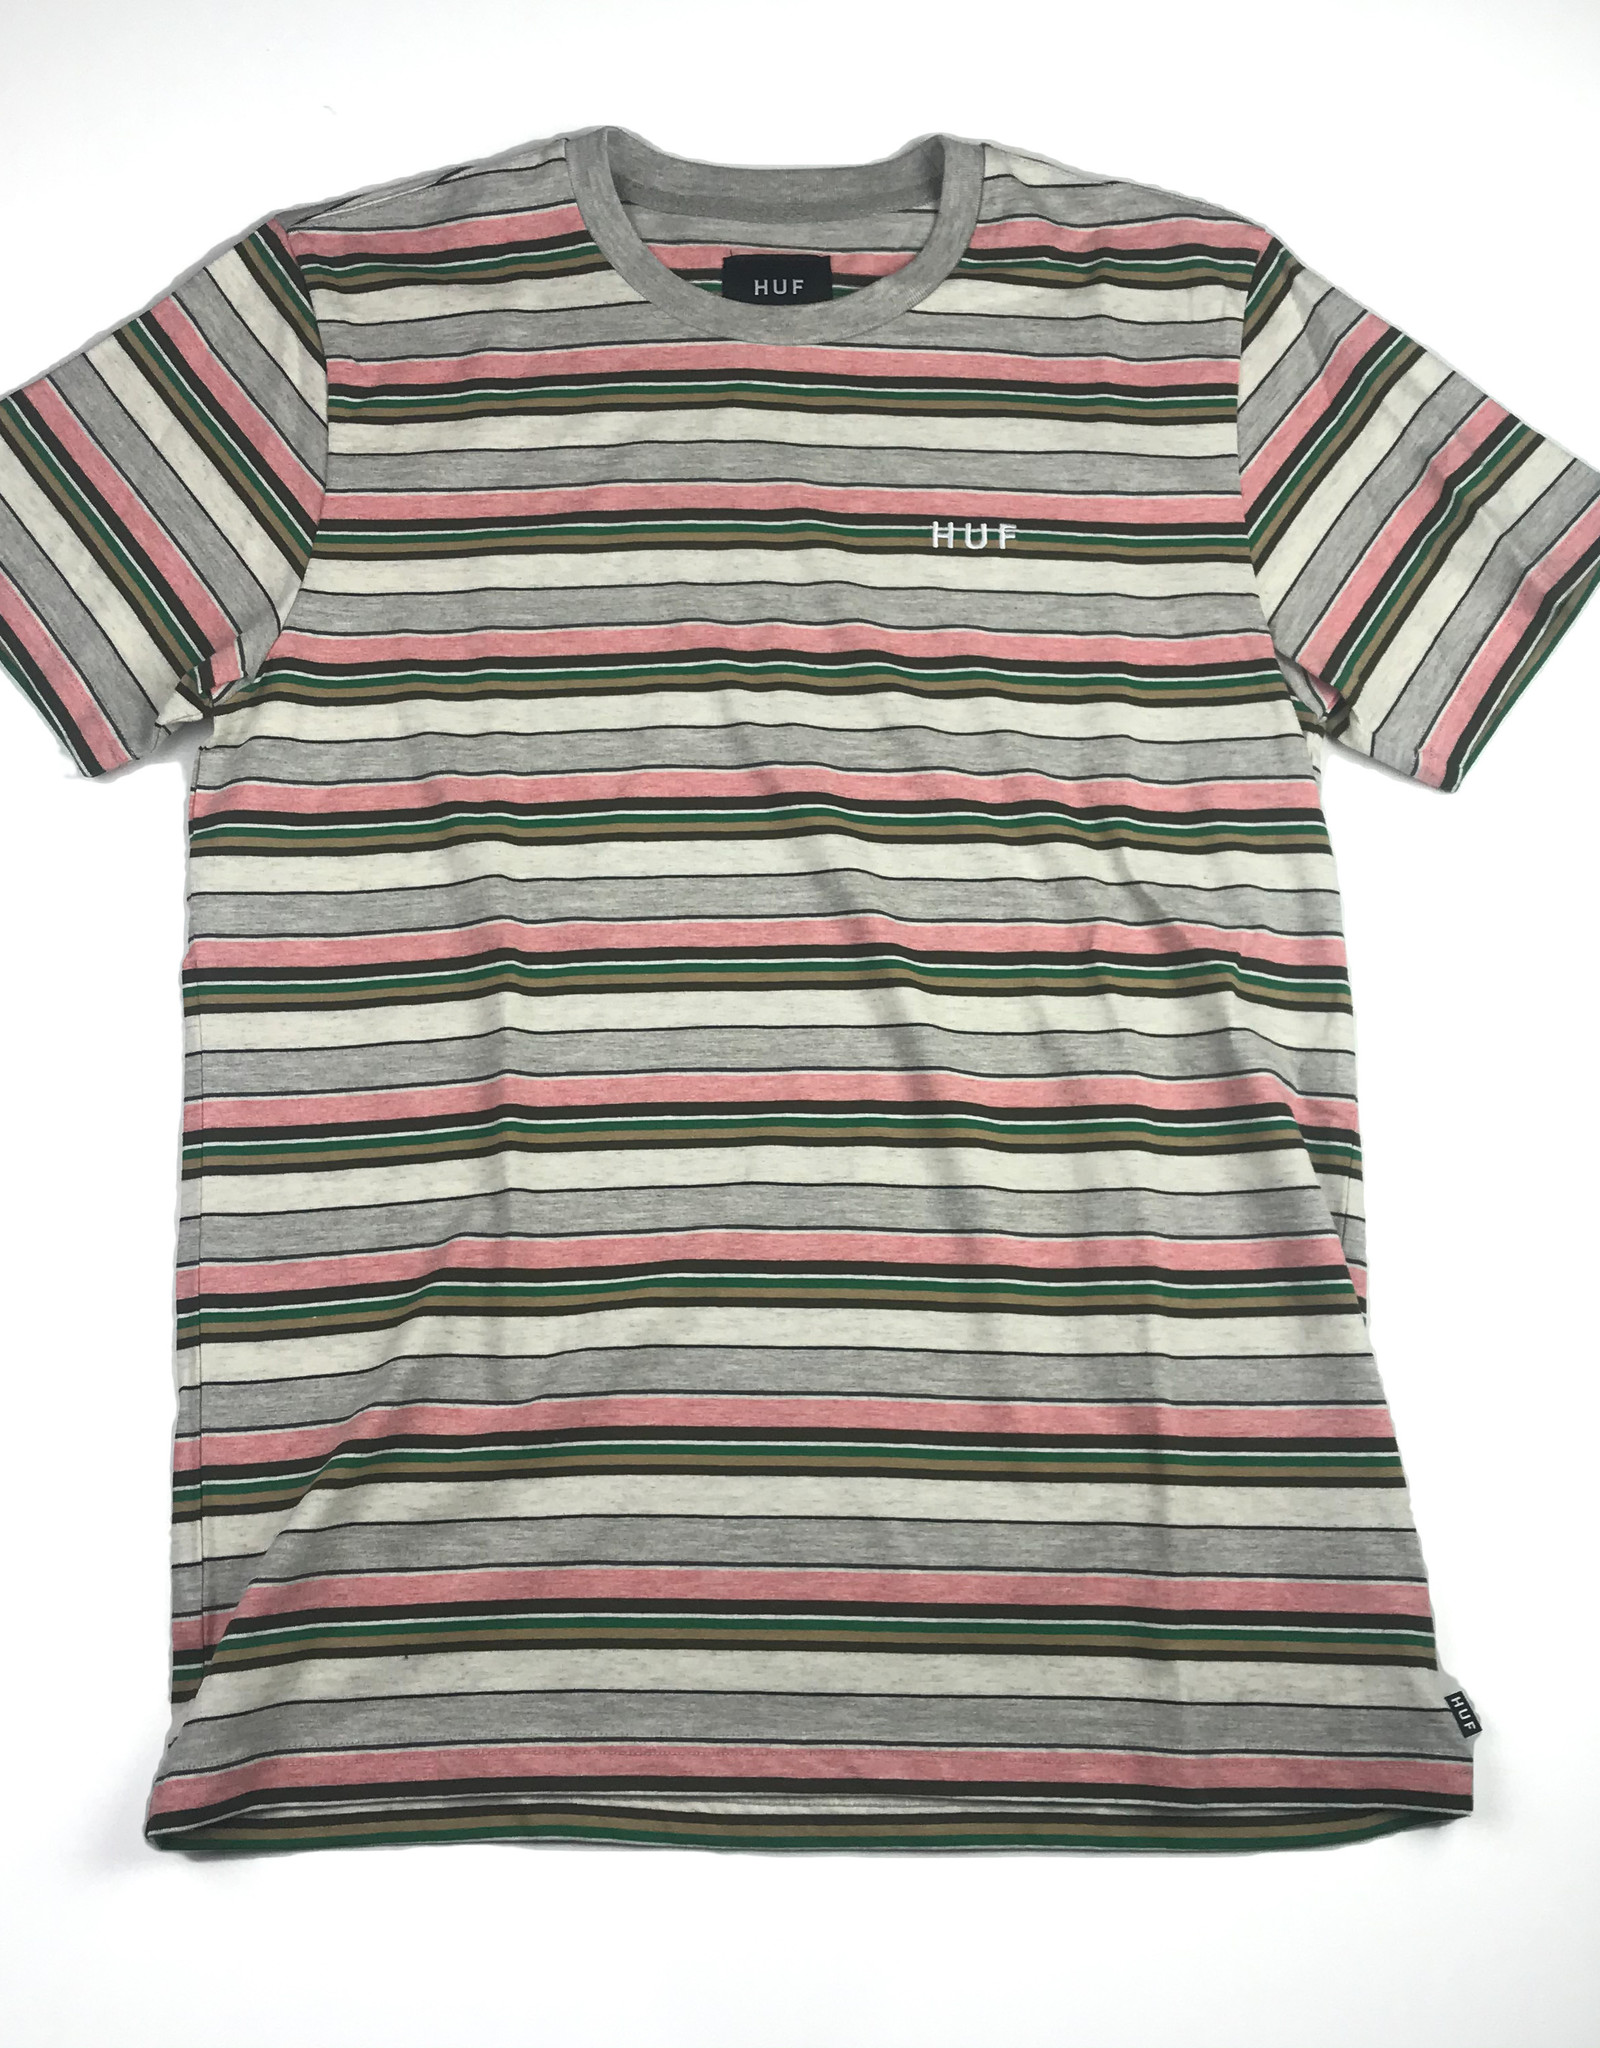 HUF OFF SHORE STRIPE TEE - PINK